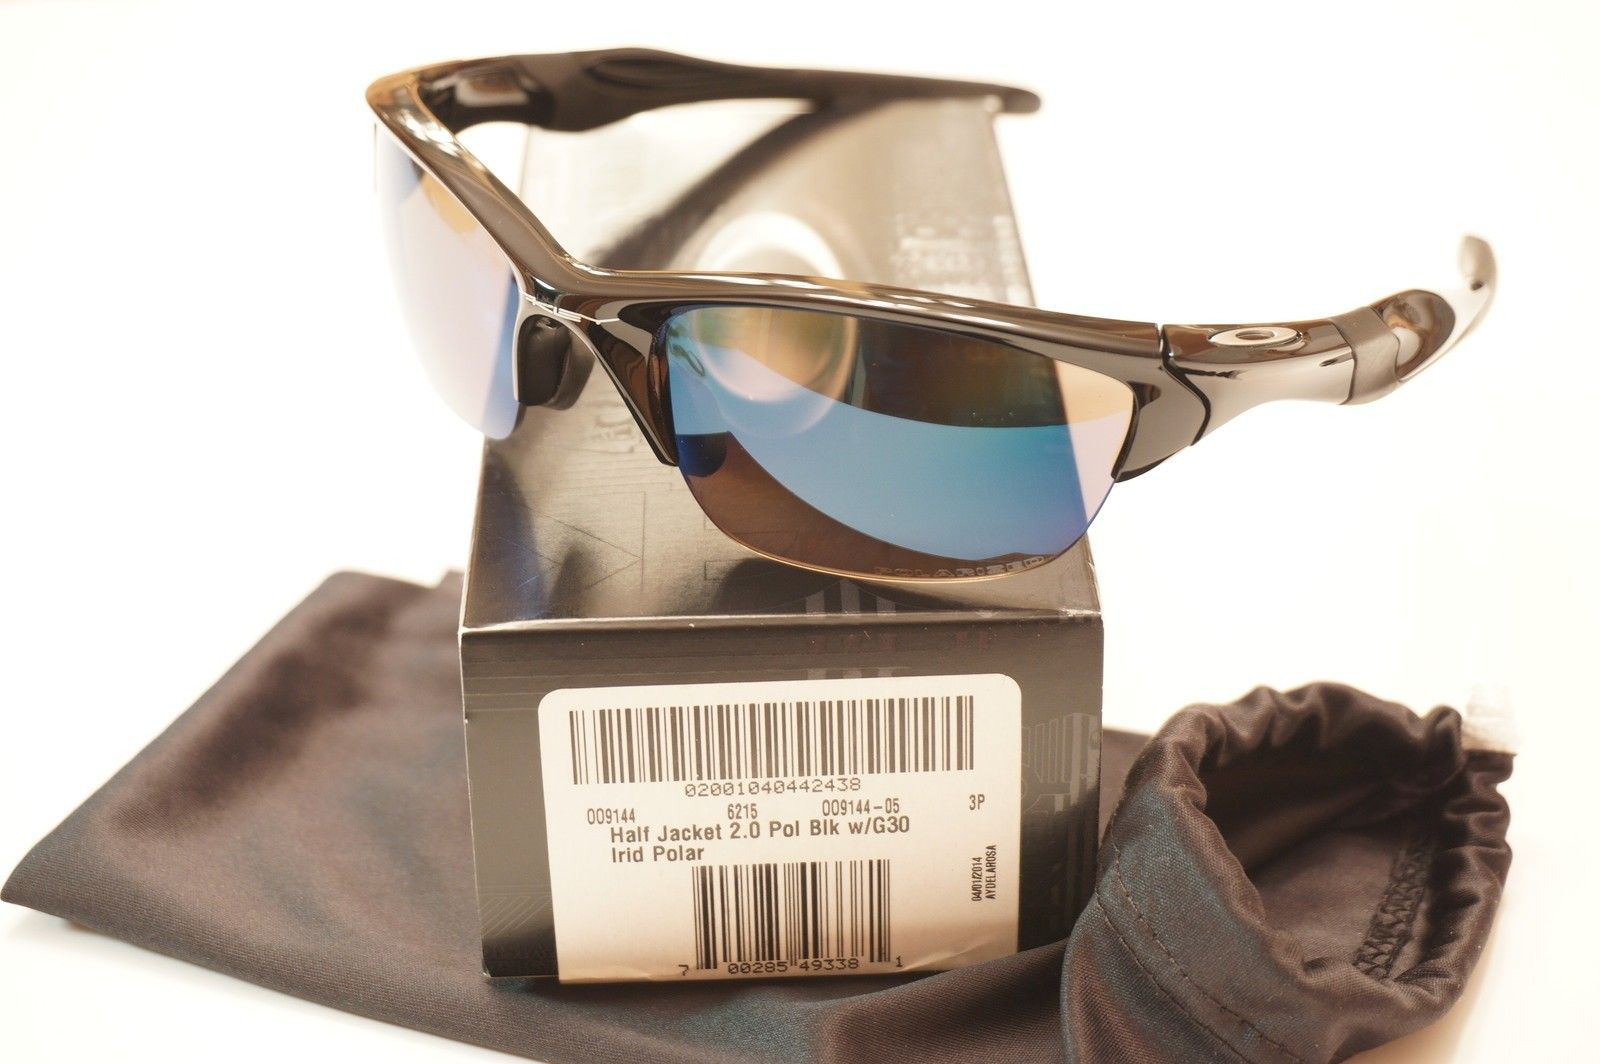 Half Jacket 2.0 Pol w/G30 and Splice Sunglasses.(SOLD) - DSC03121.JPG